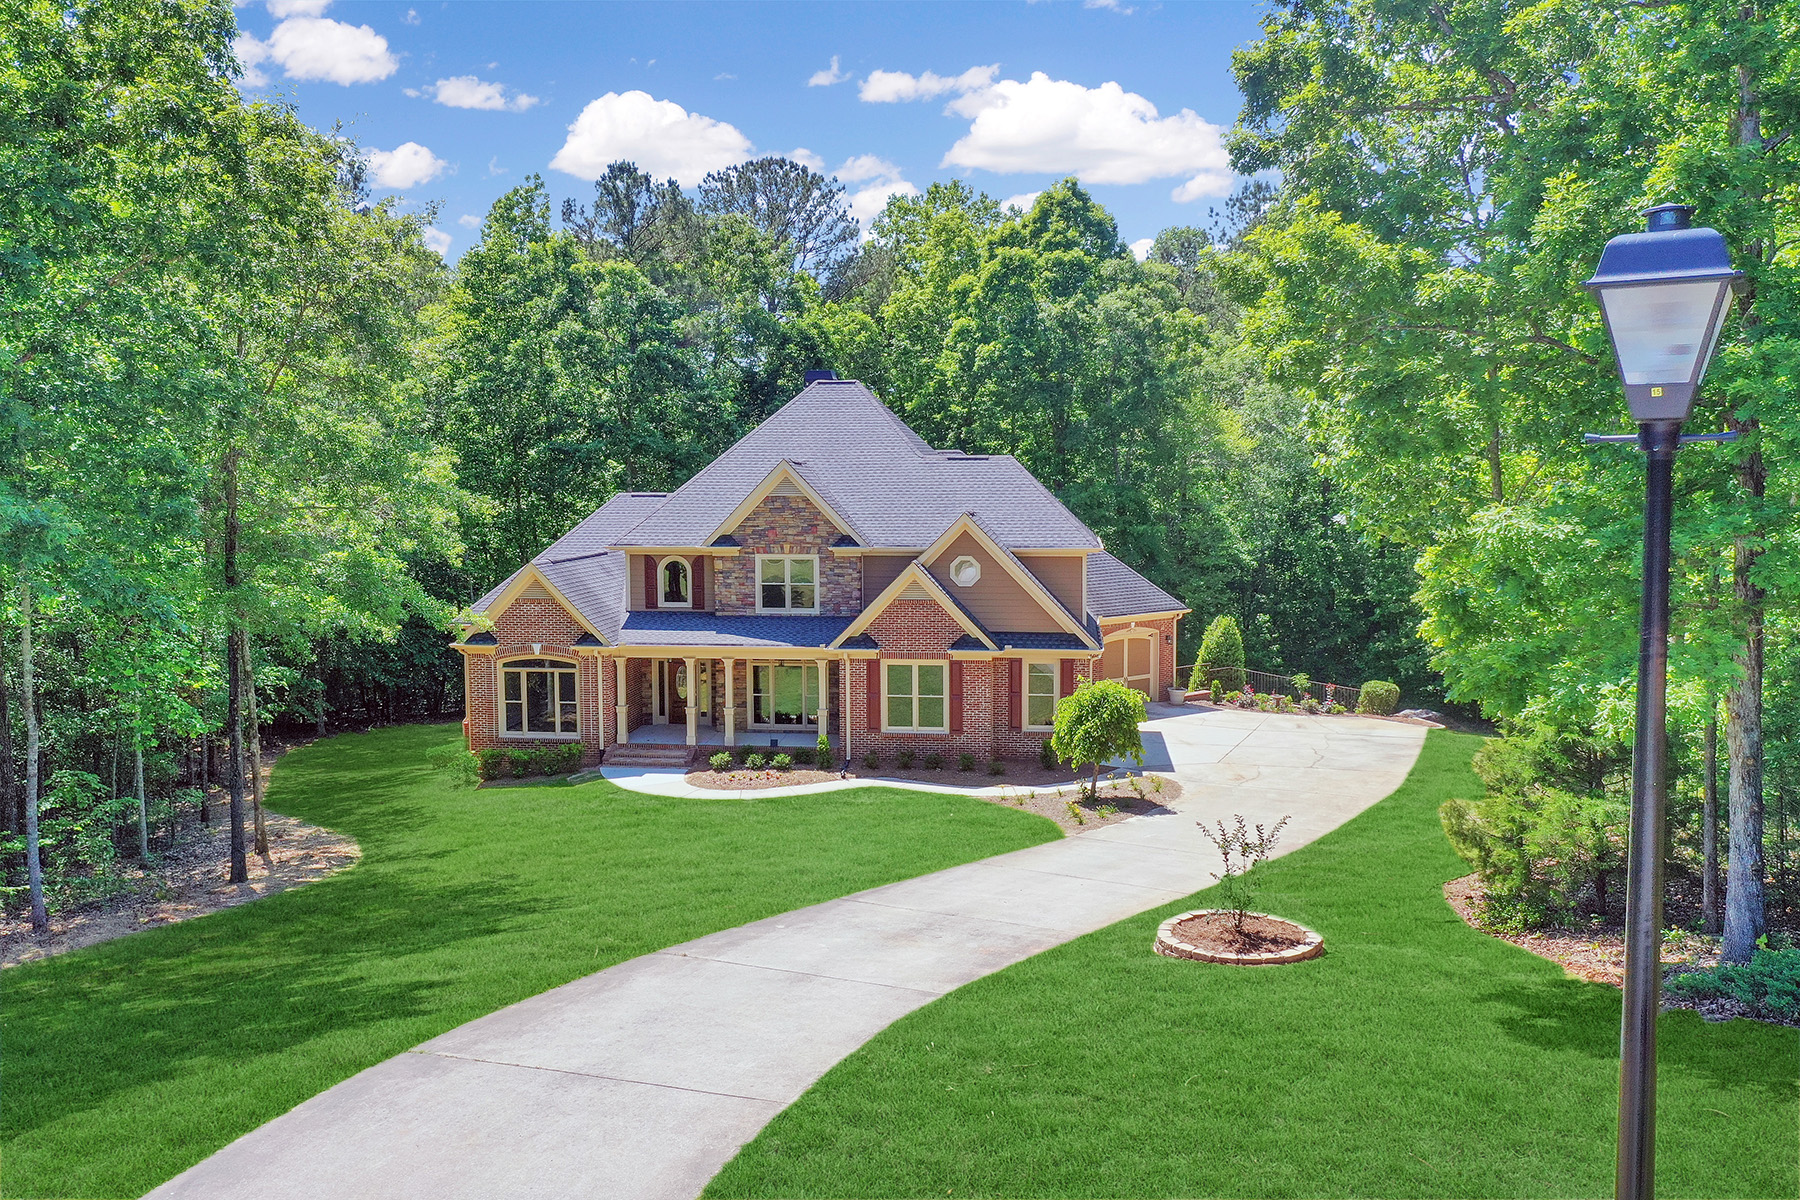 Single Family Homes for Sale at Beautiful Longview Creekside Home 130 Oak Forest Drive Oxford, Georgia 30054 United States